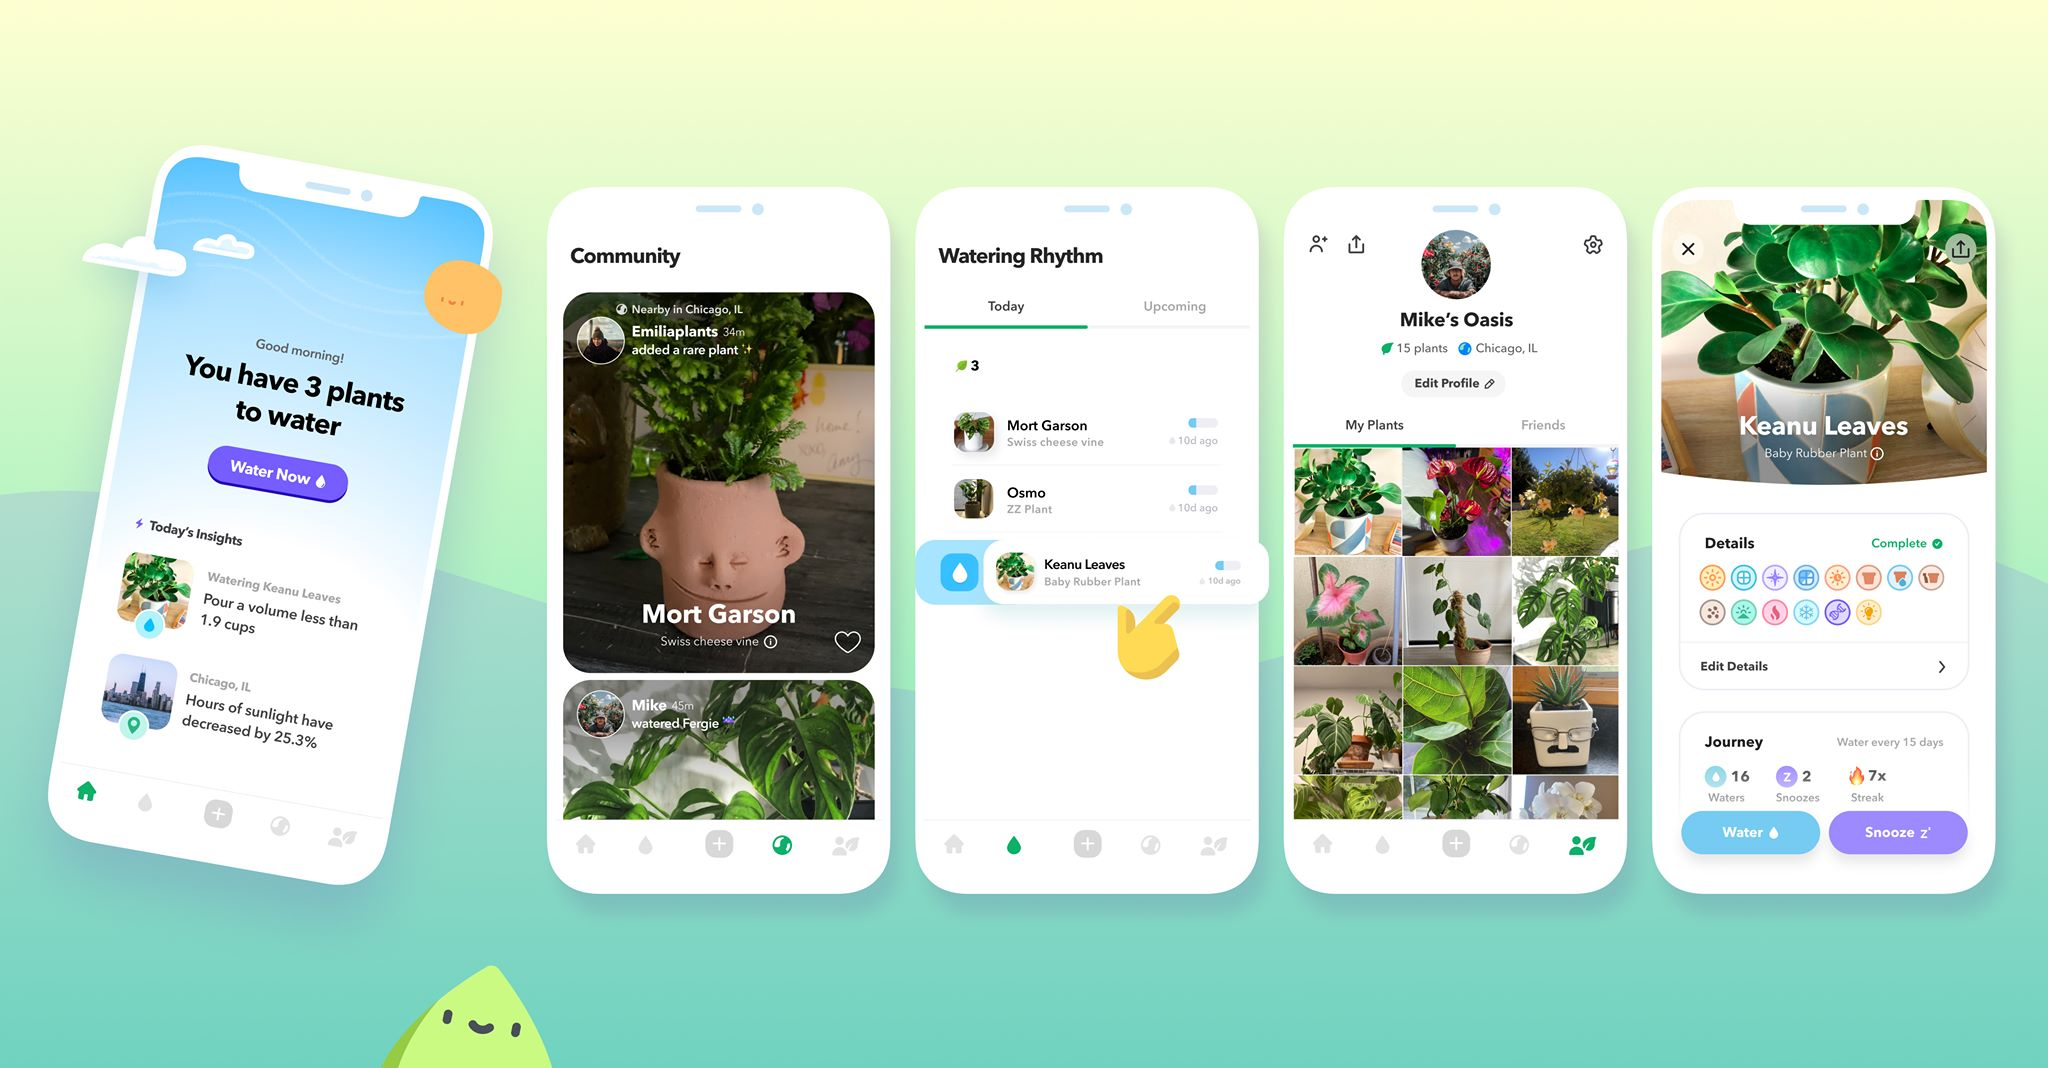 Elie Seidman Invests in Plant App Founded by Tinder's Director of Engineering